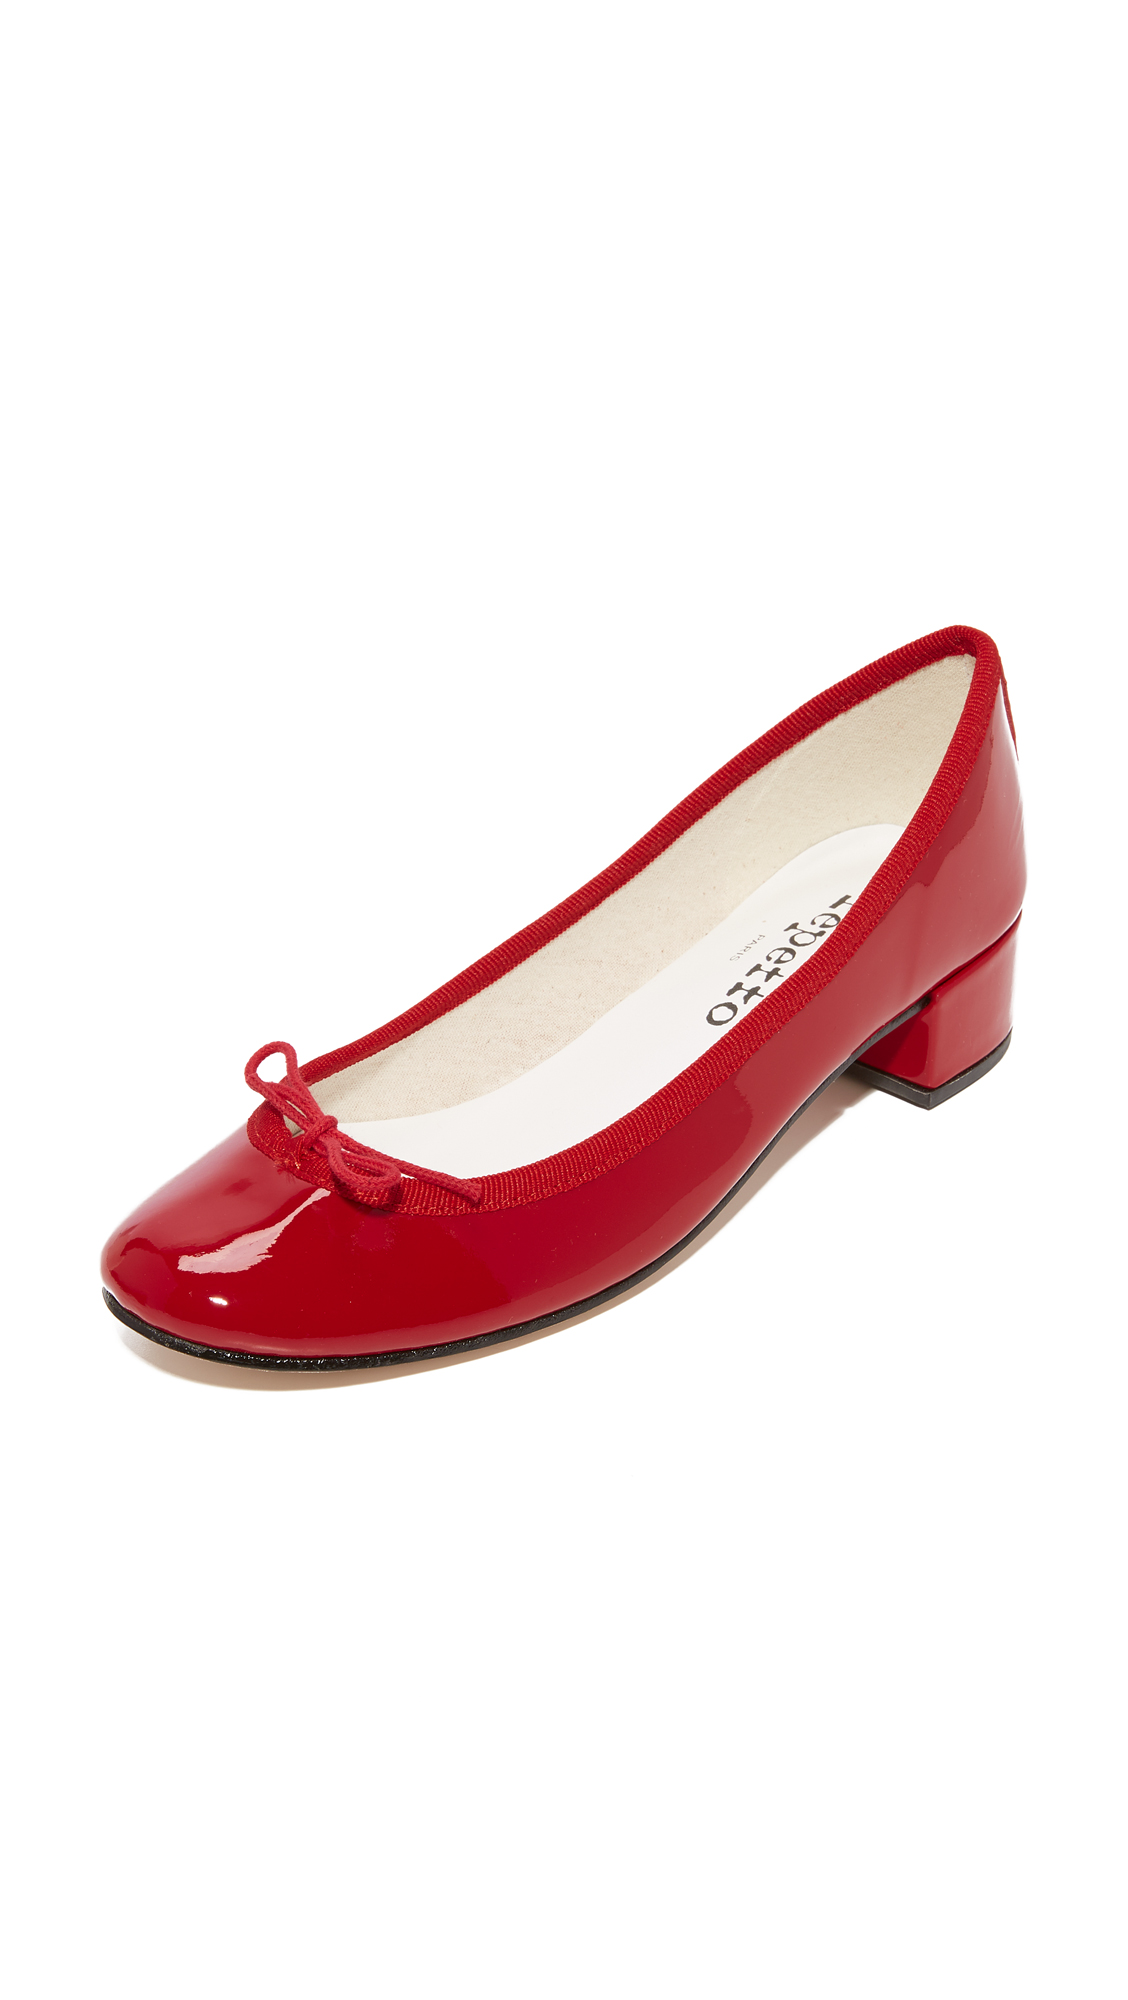 Repetto Camille Ballerina Heels - Flamme